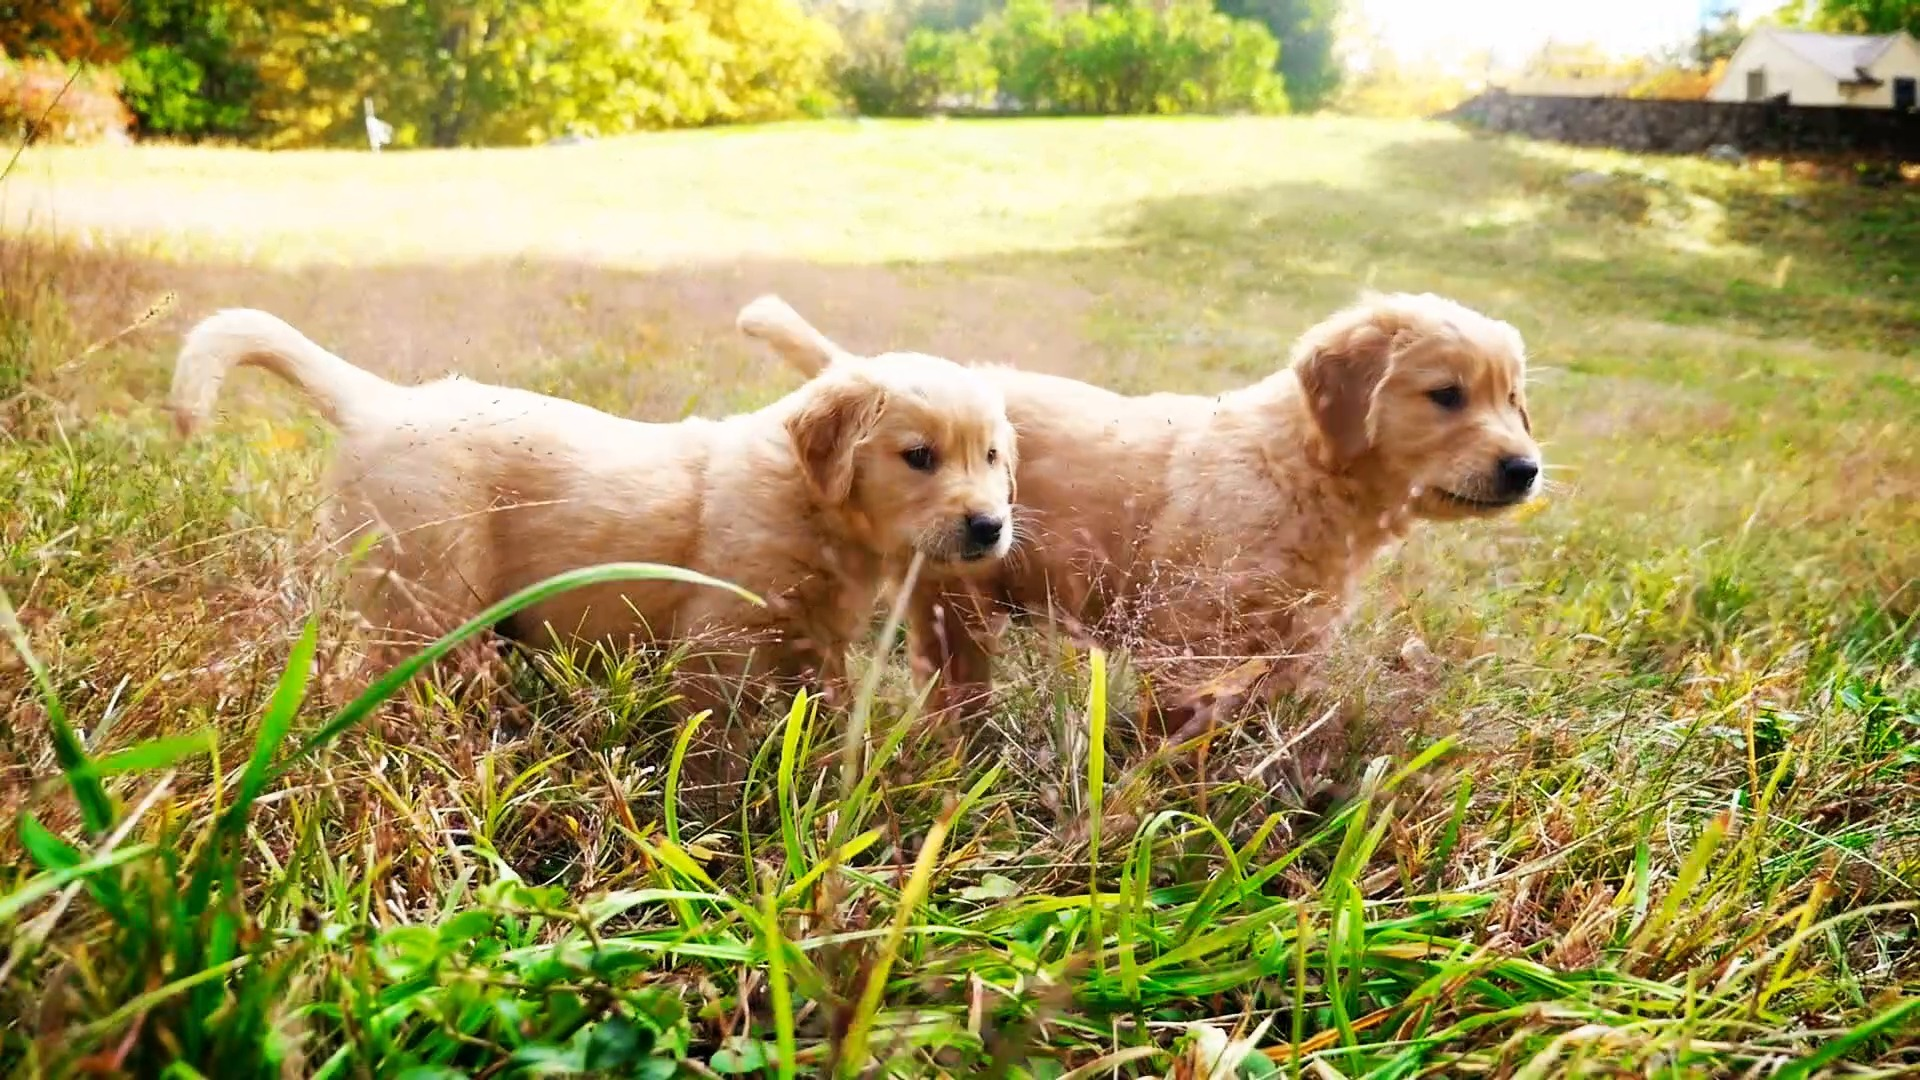 The Cutest Puppies - The Cutest Golden Retriever Puppies